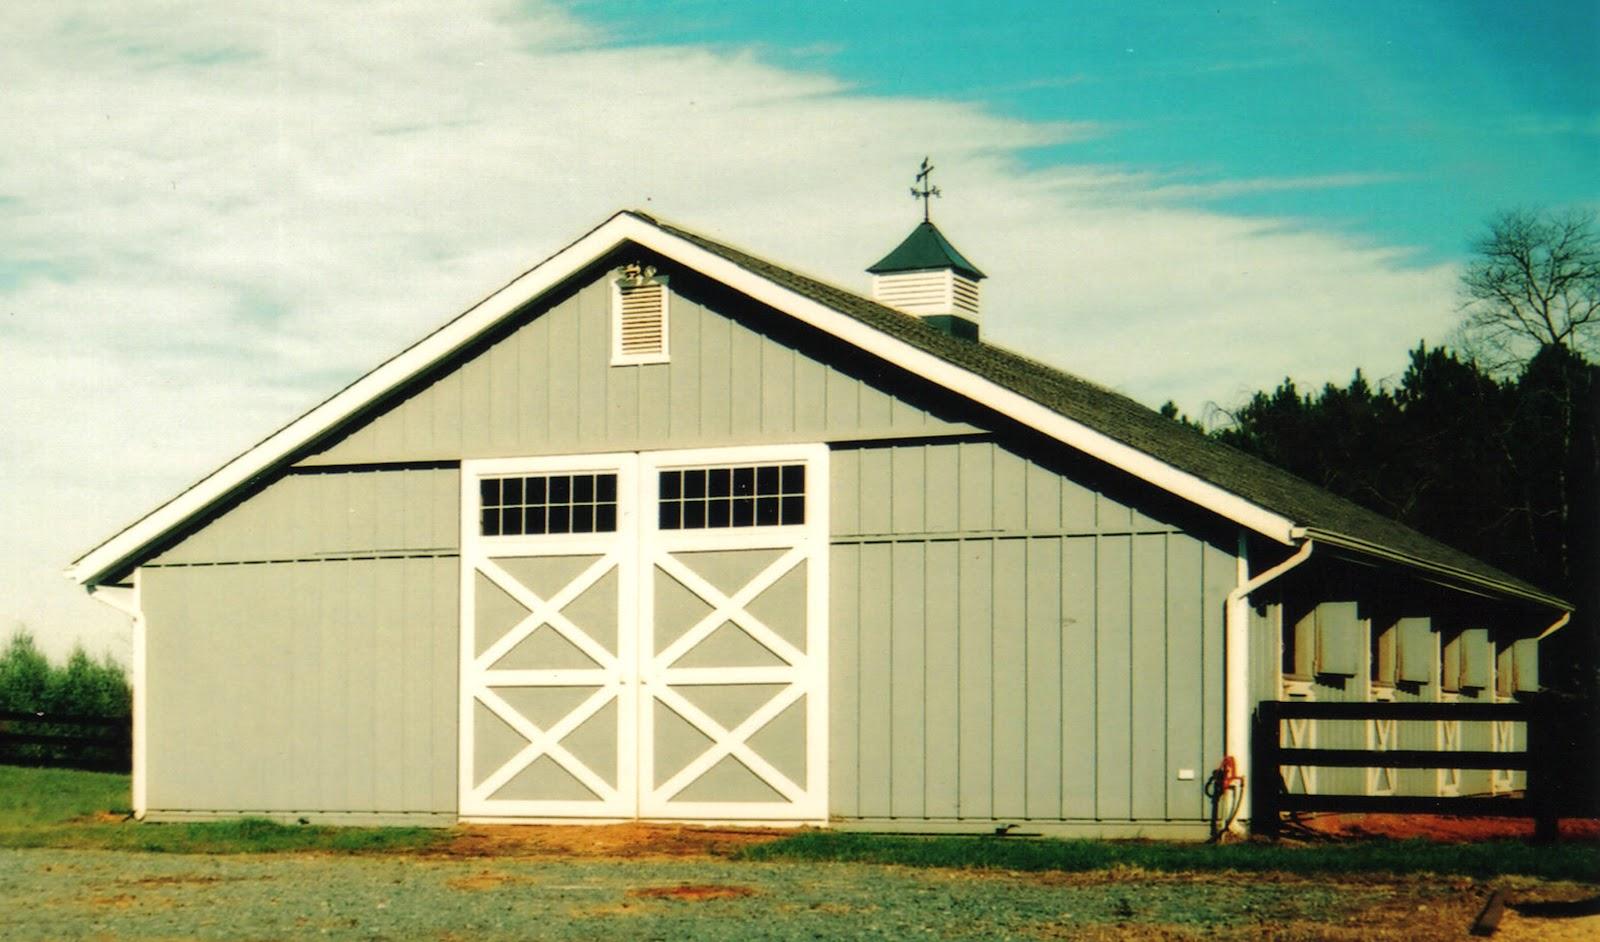 Rose valley ranch plans for Equestrian barn plans